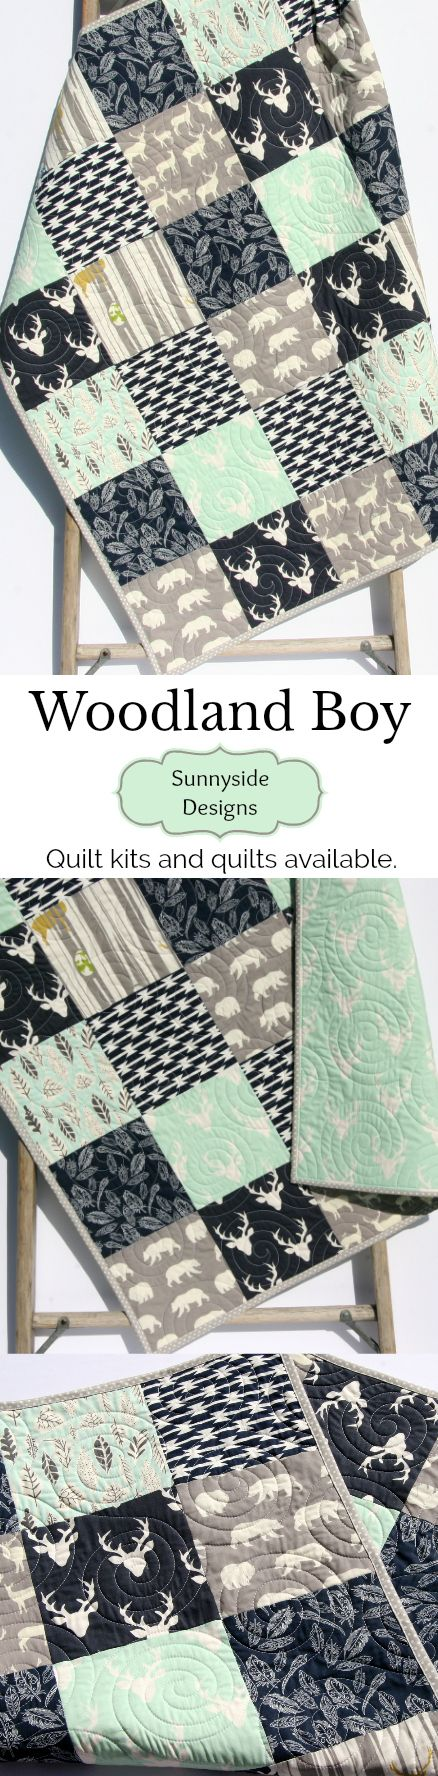 Woodland Boy Nursery, Baby Boy Quilt, Toddler Bed Quilt, Handmade Baby Quilt, Shower Gift, Baby Quilt Kit, Toddler Quilt Kit, Throw Quilt Kit, Twin Quilt Kit, Gifts for Him by Sunnyside Designs